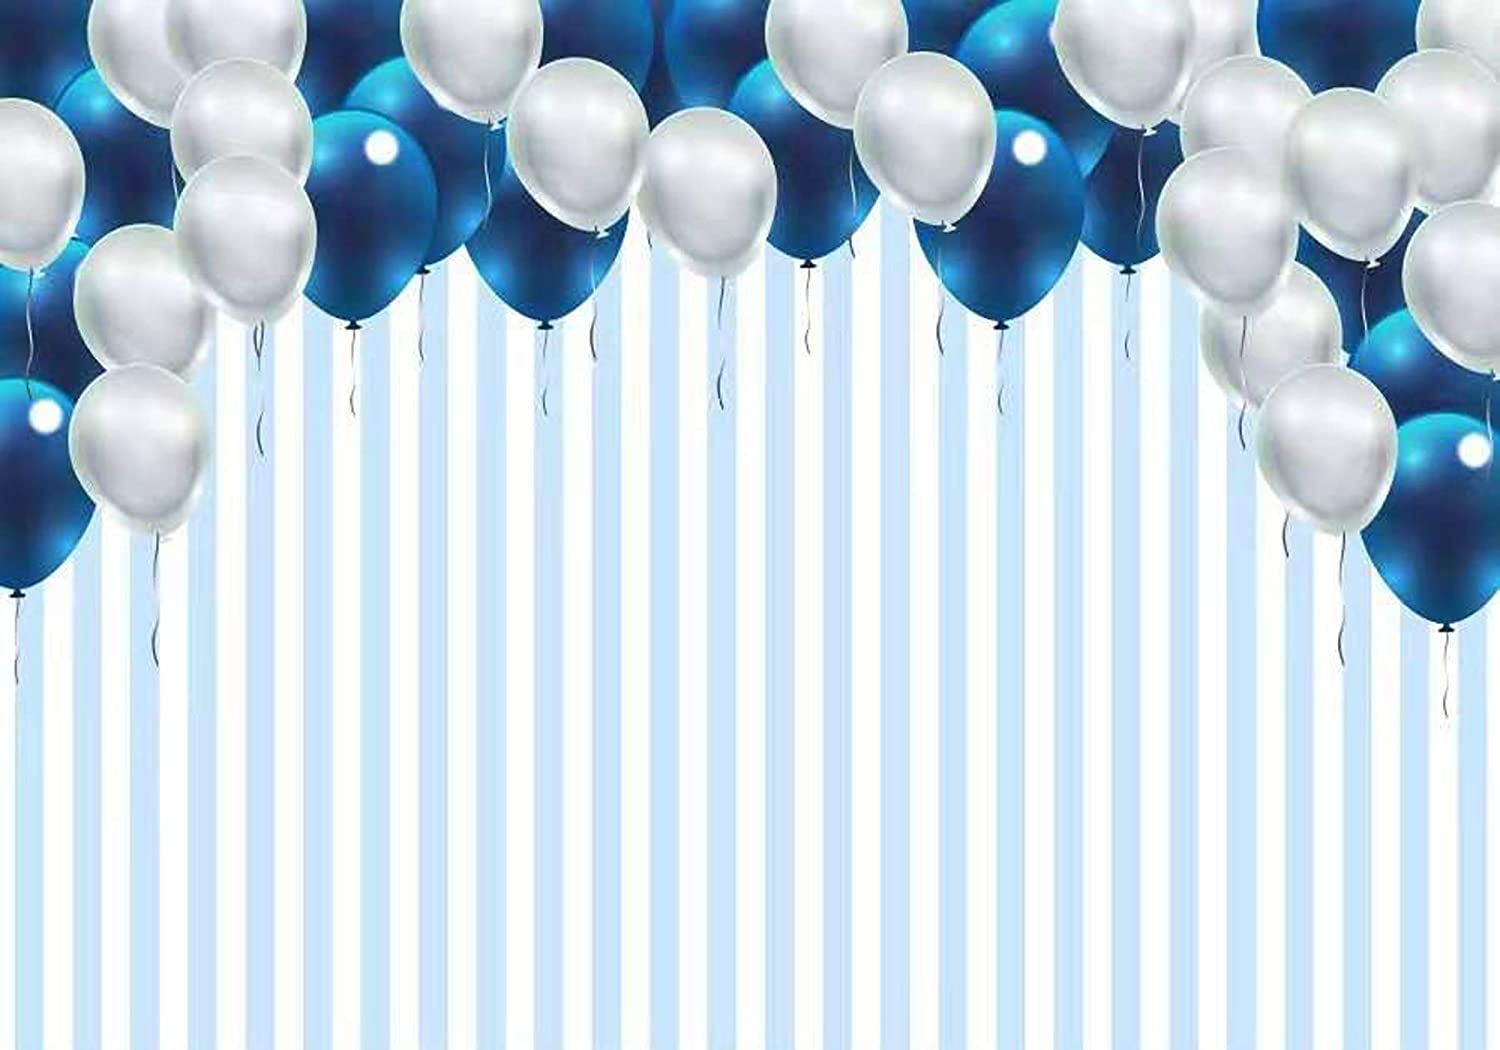 London Room Blue Stripes Birthday Banner Party Decoration Backdrop